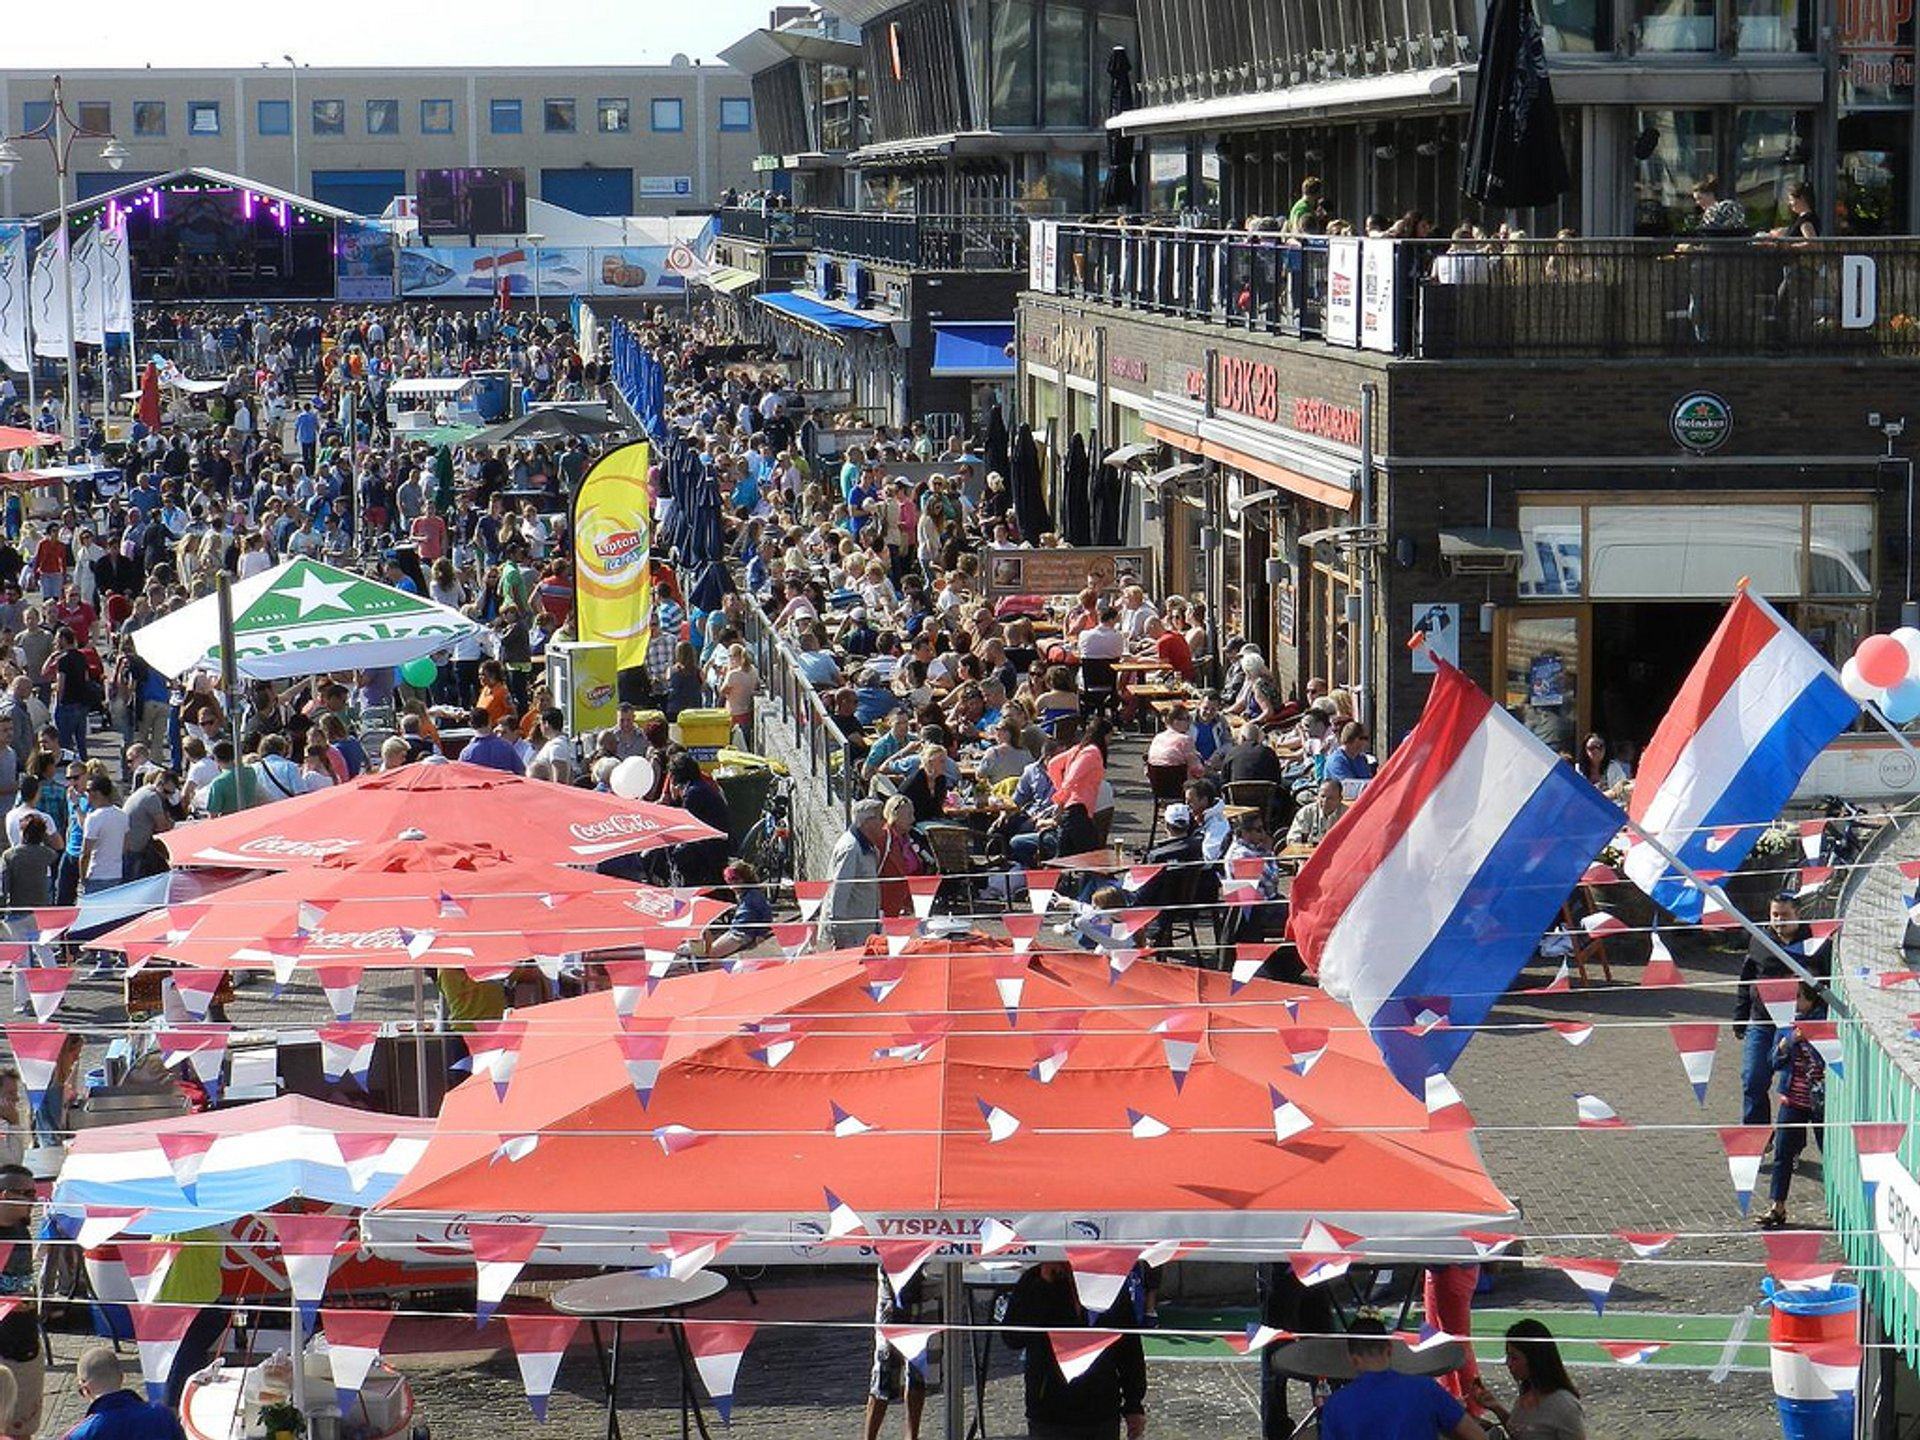 Flag Day in The Netherlands - Best Season 2020